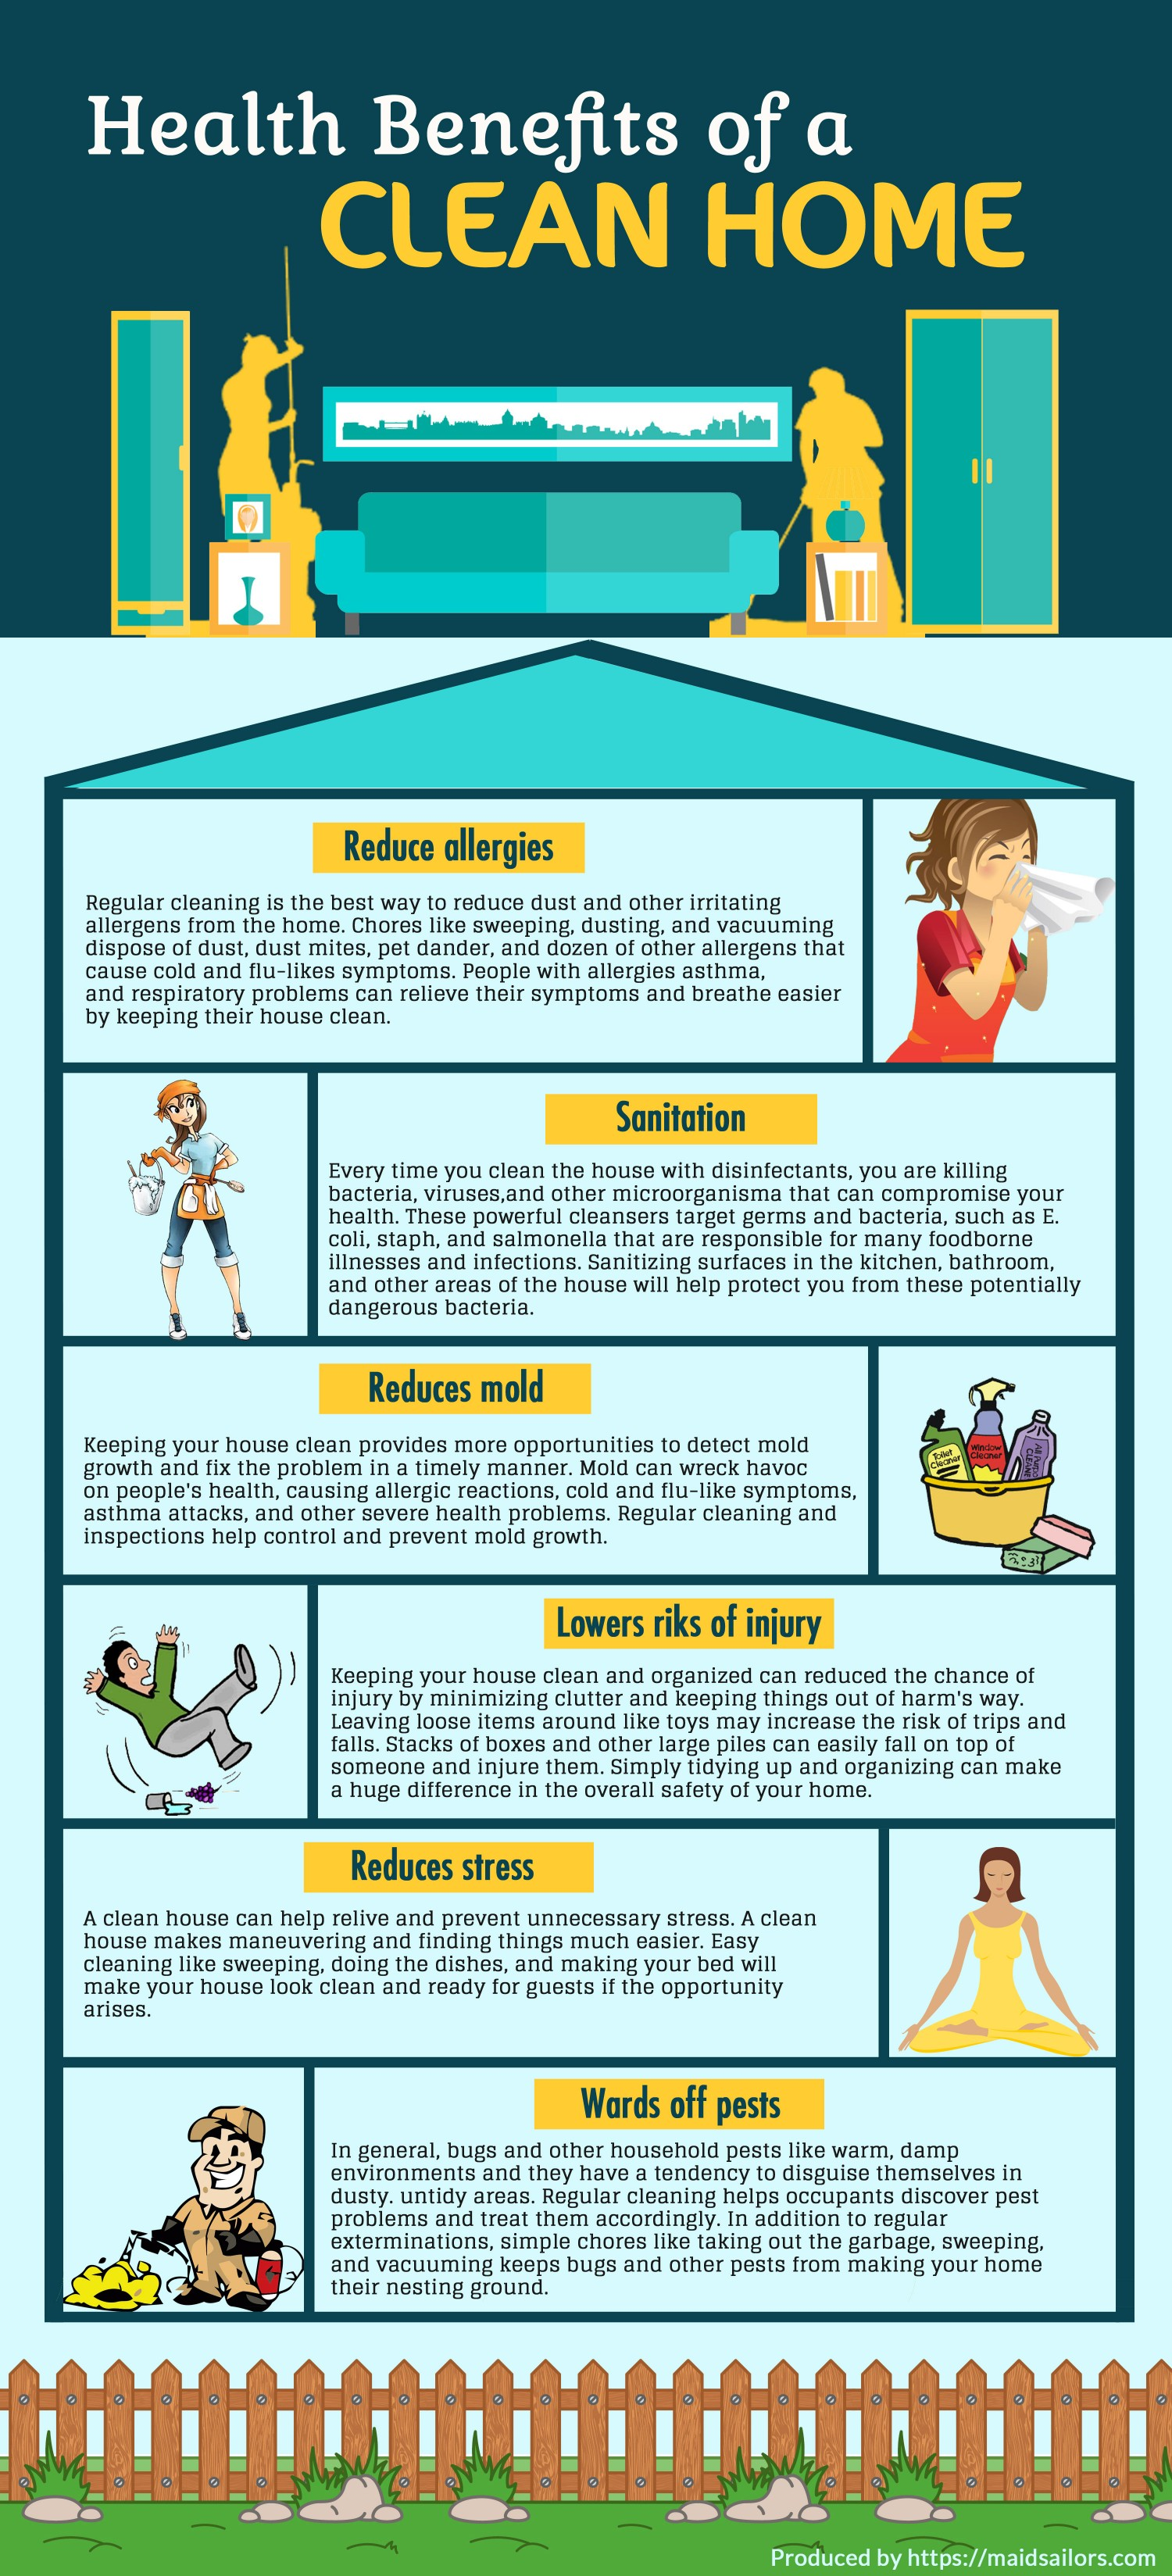 Health benefits of a clean home infographic